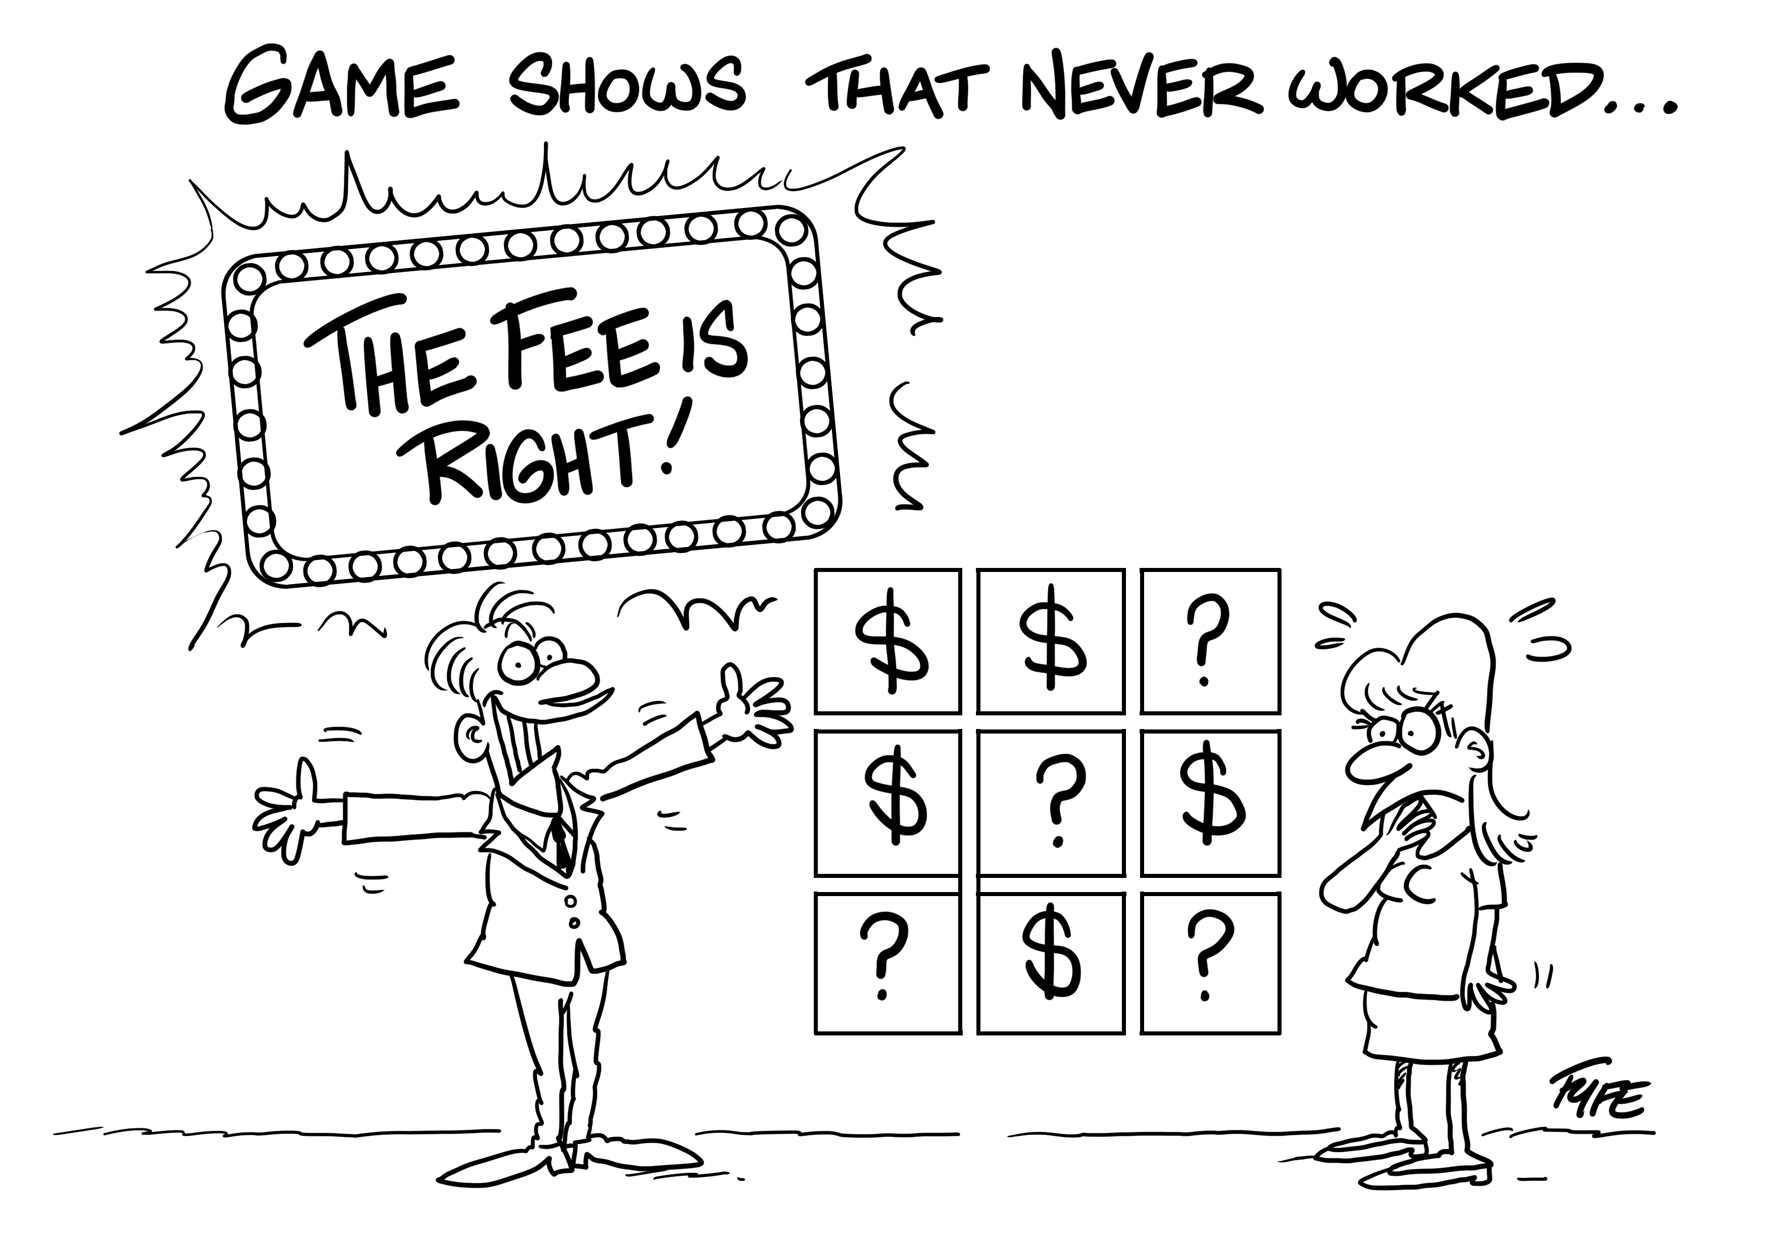 The Fee is Right low res